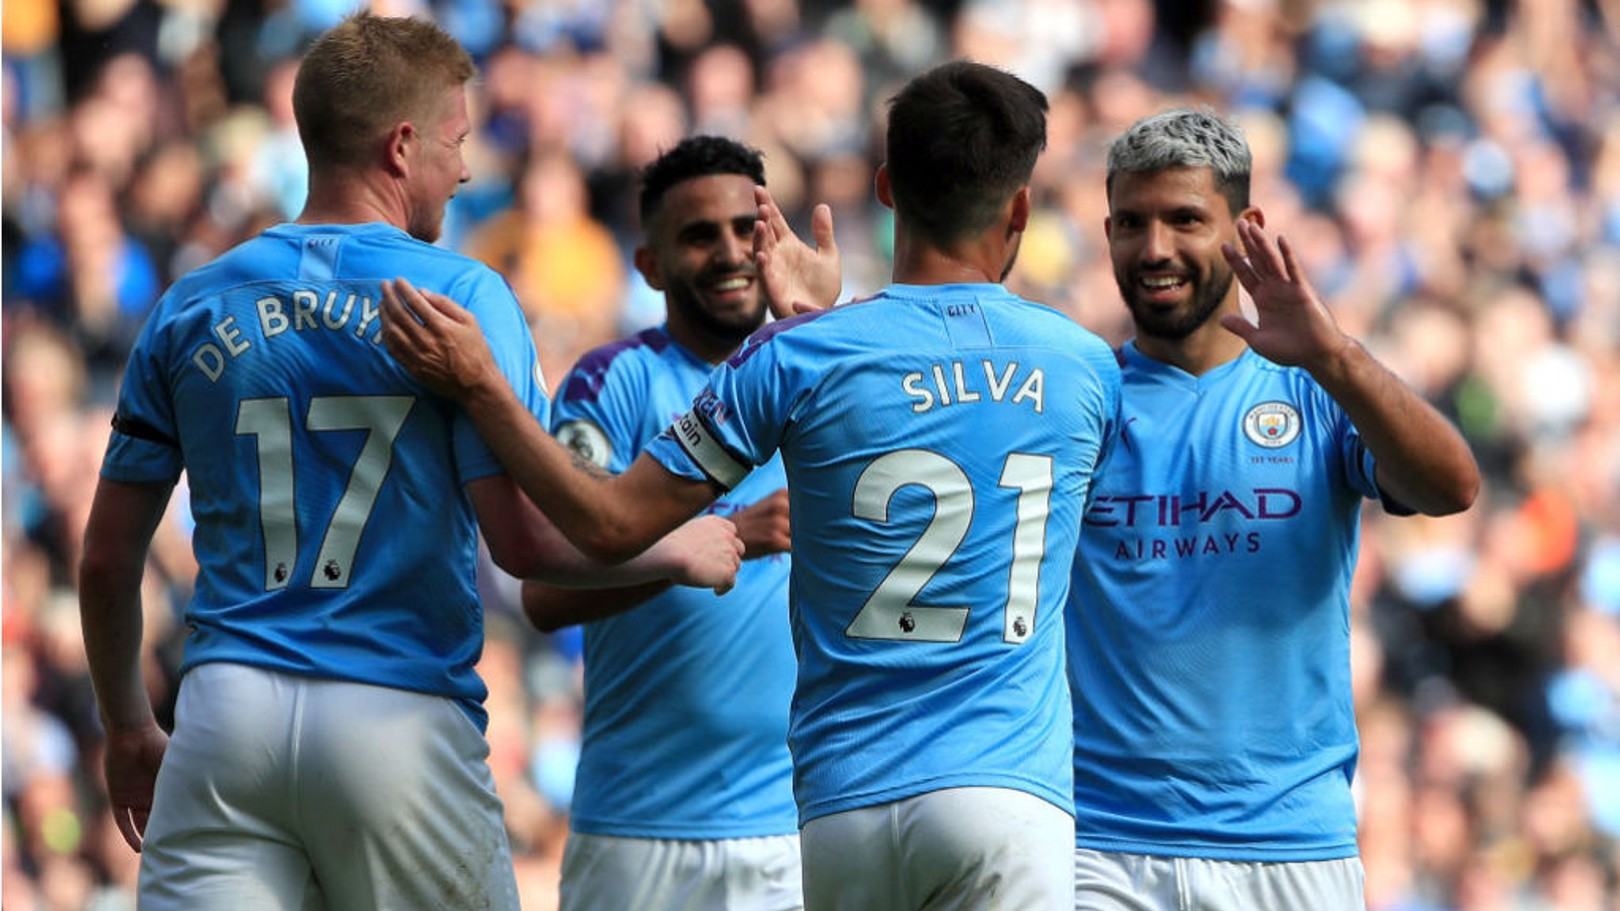 City in September: Key dates and match info